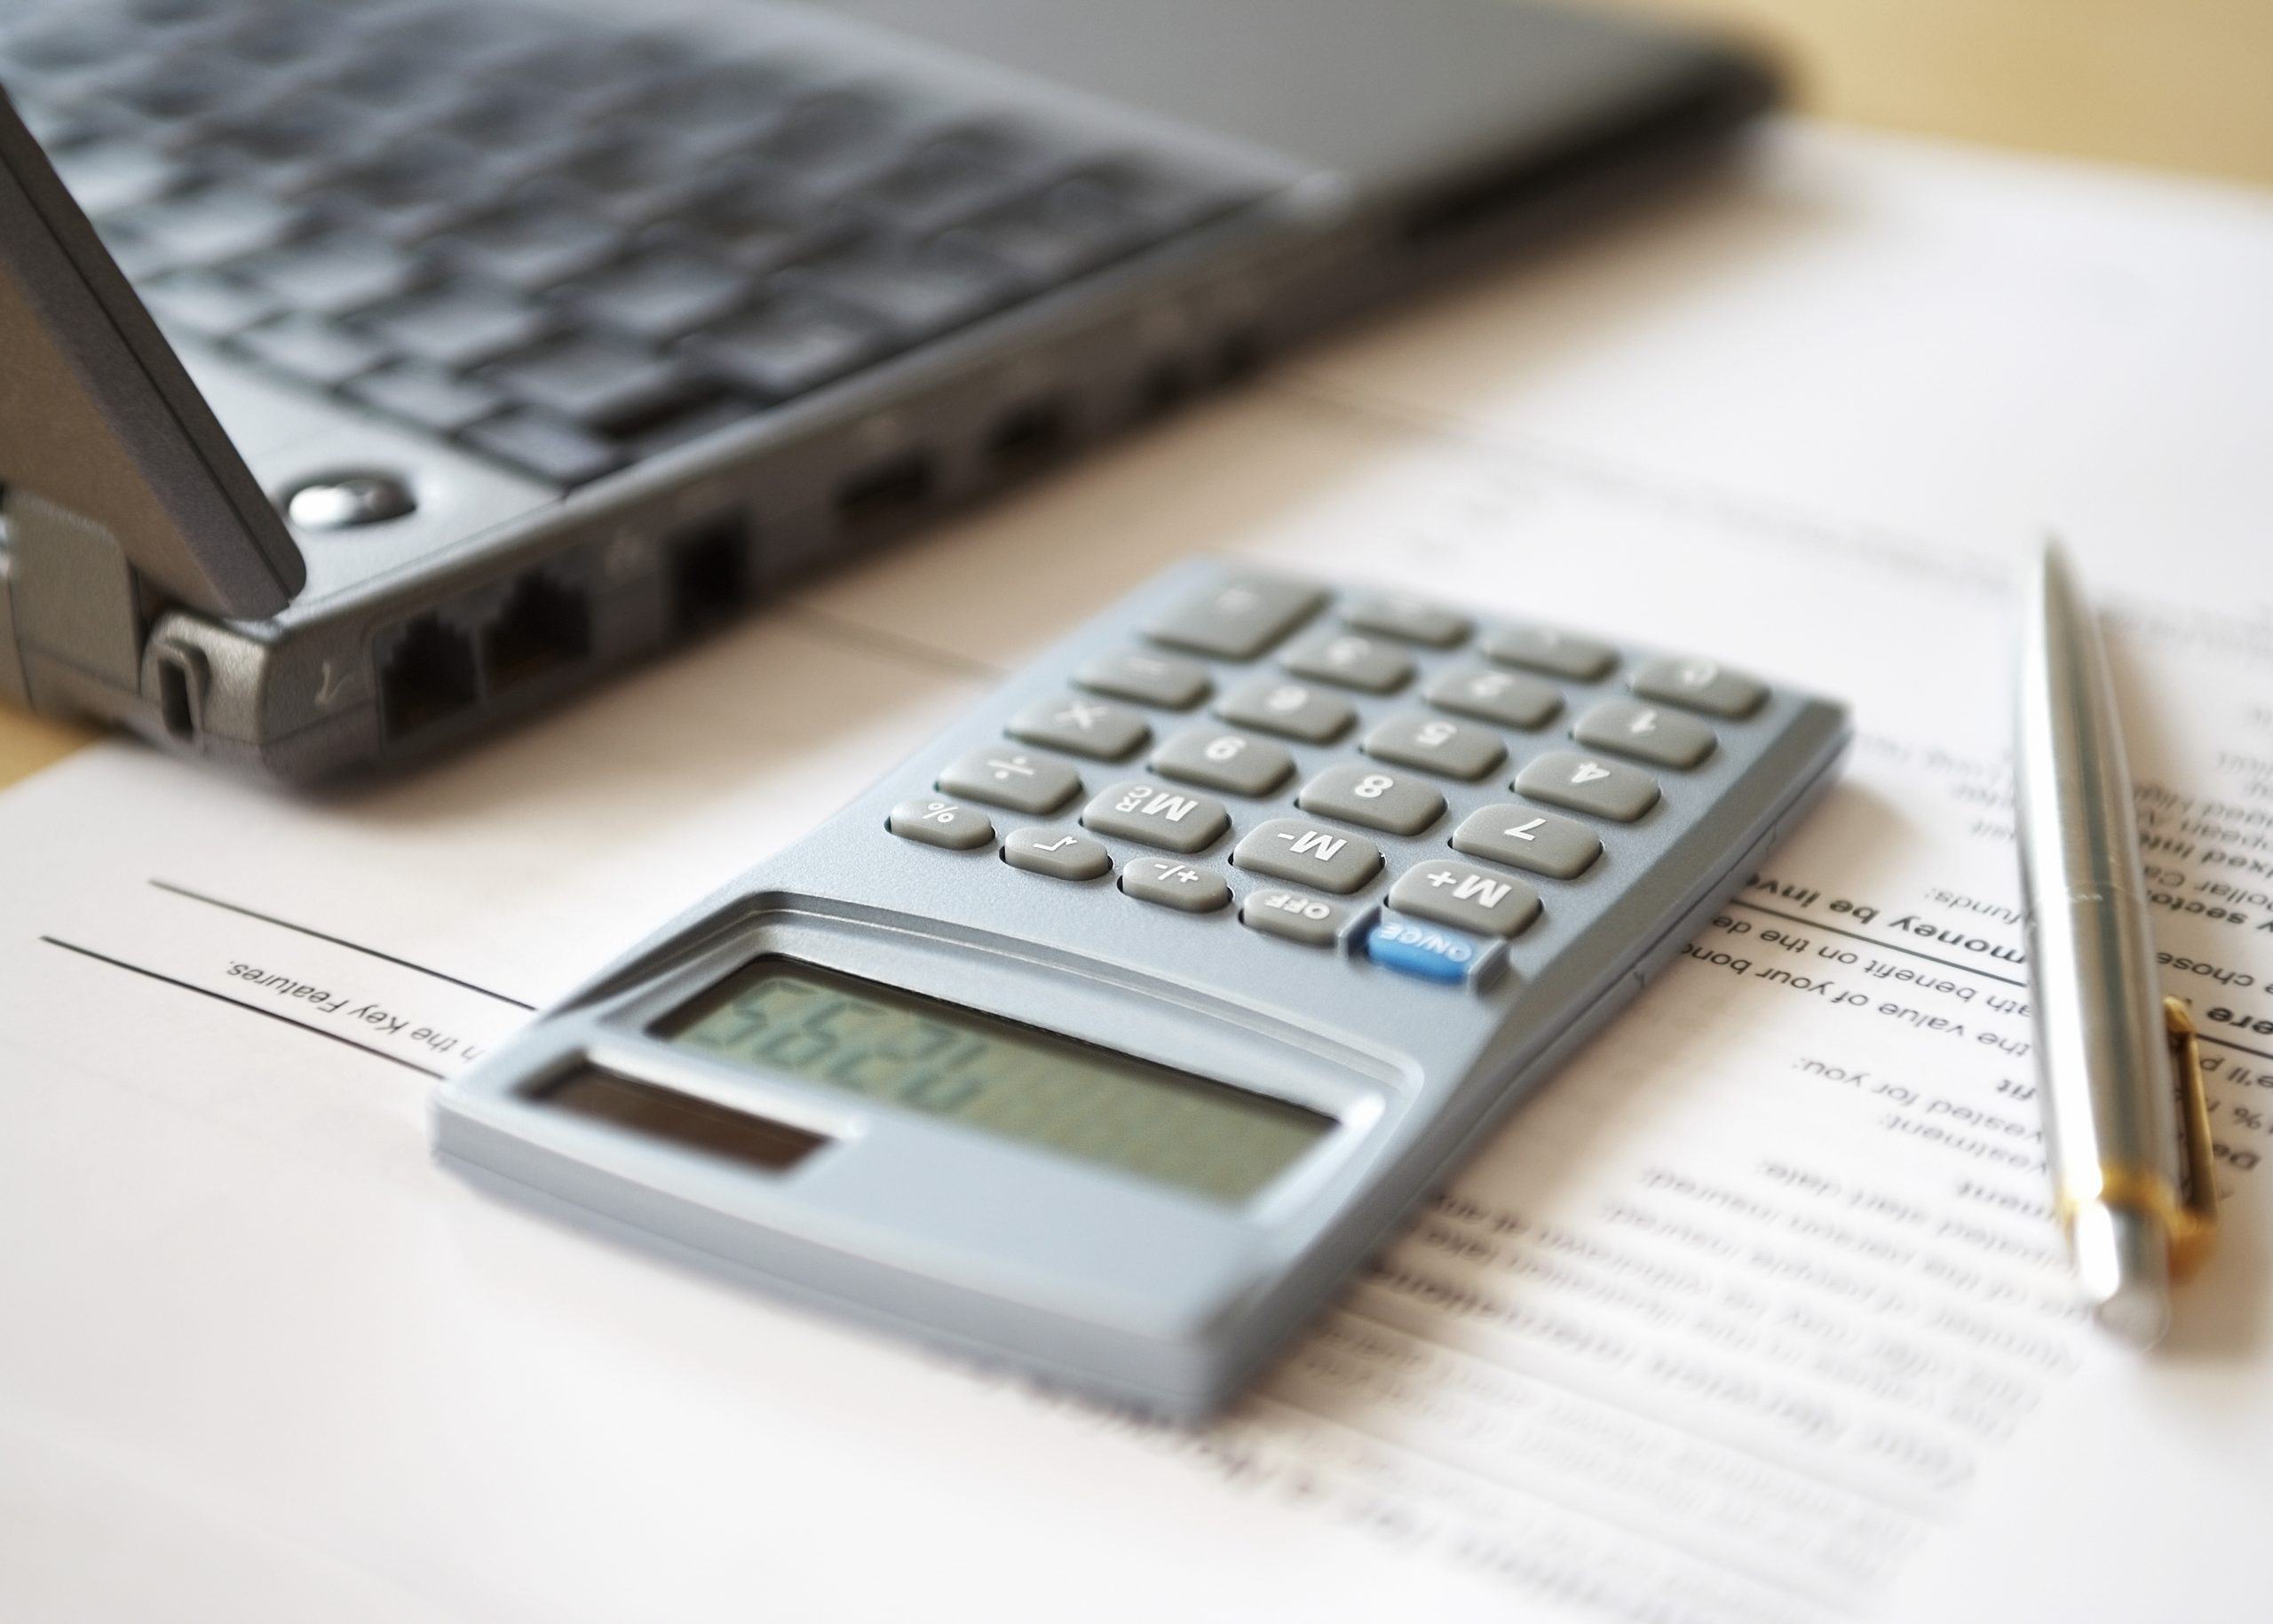 Image of a calculator, pen, paperwork, and laptop. Link takes you to the Bank of Versailles Certificates of Deposit page.